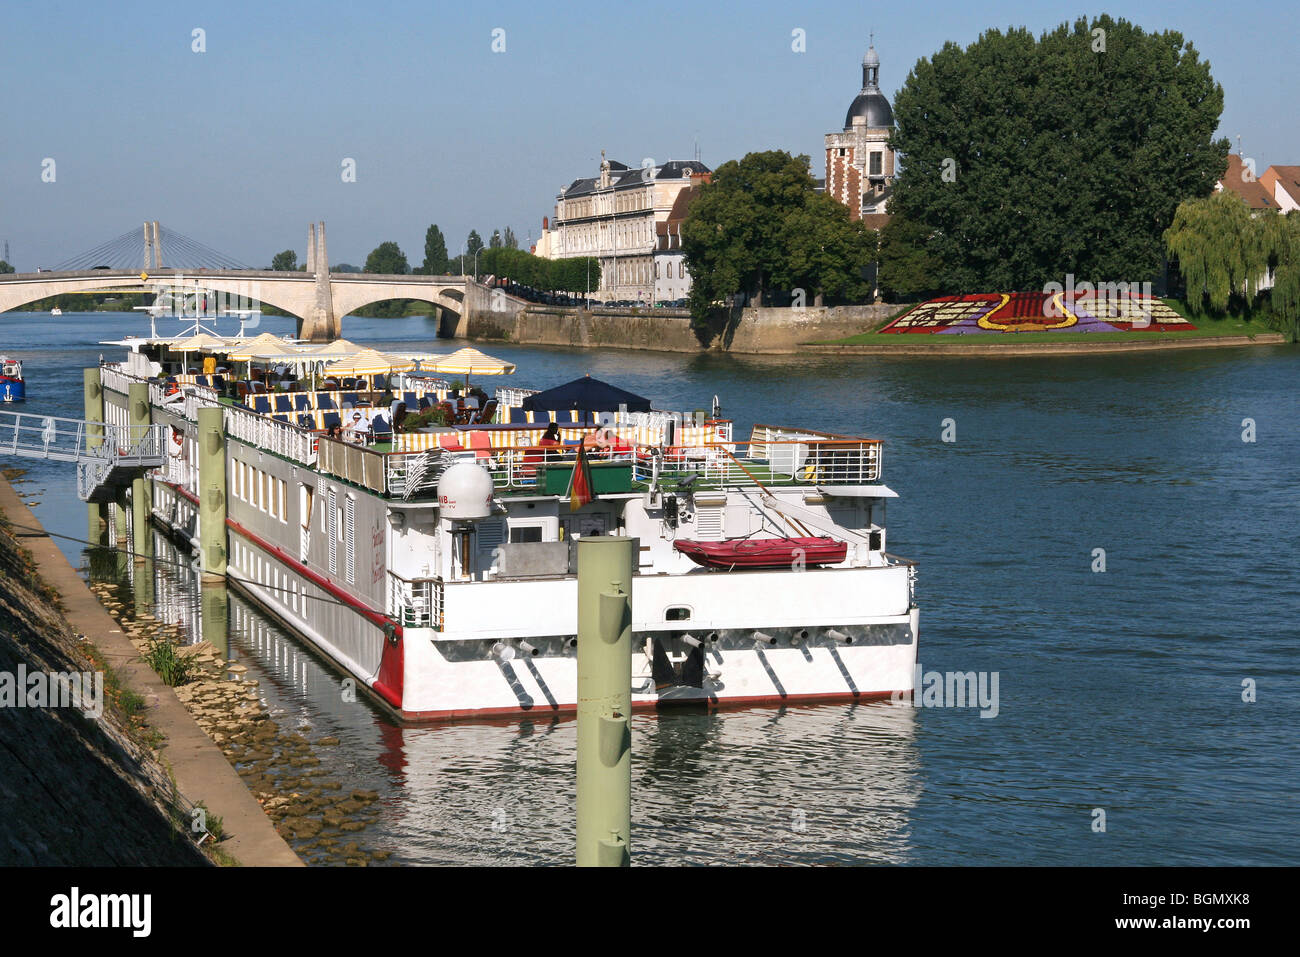 saone river village stock photos saone river village stock images alamy. Black Bedroom Furniture Sets. Home Design Ideas